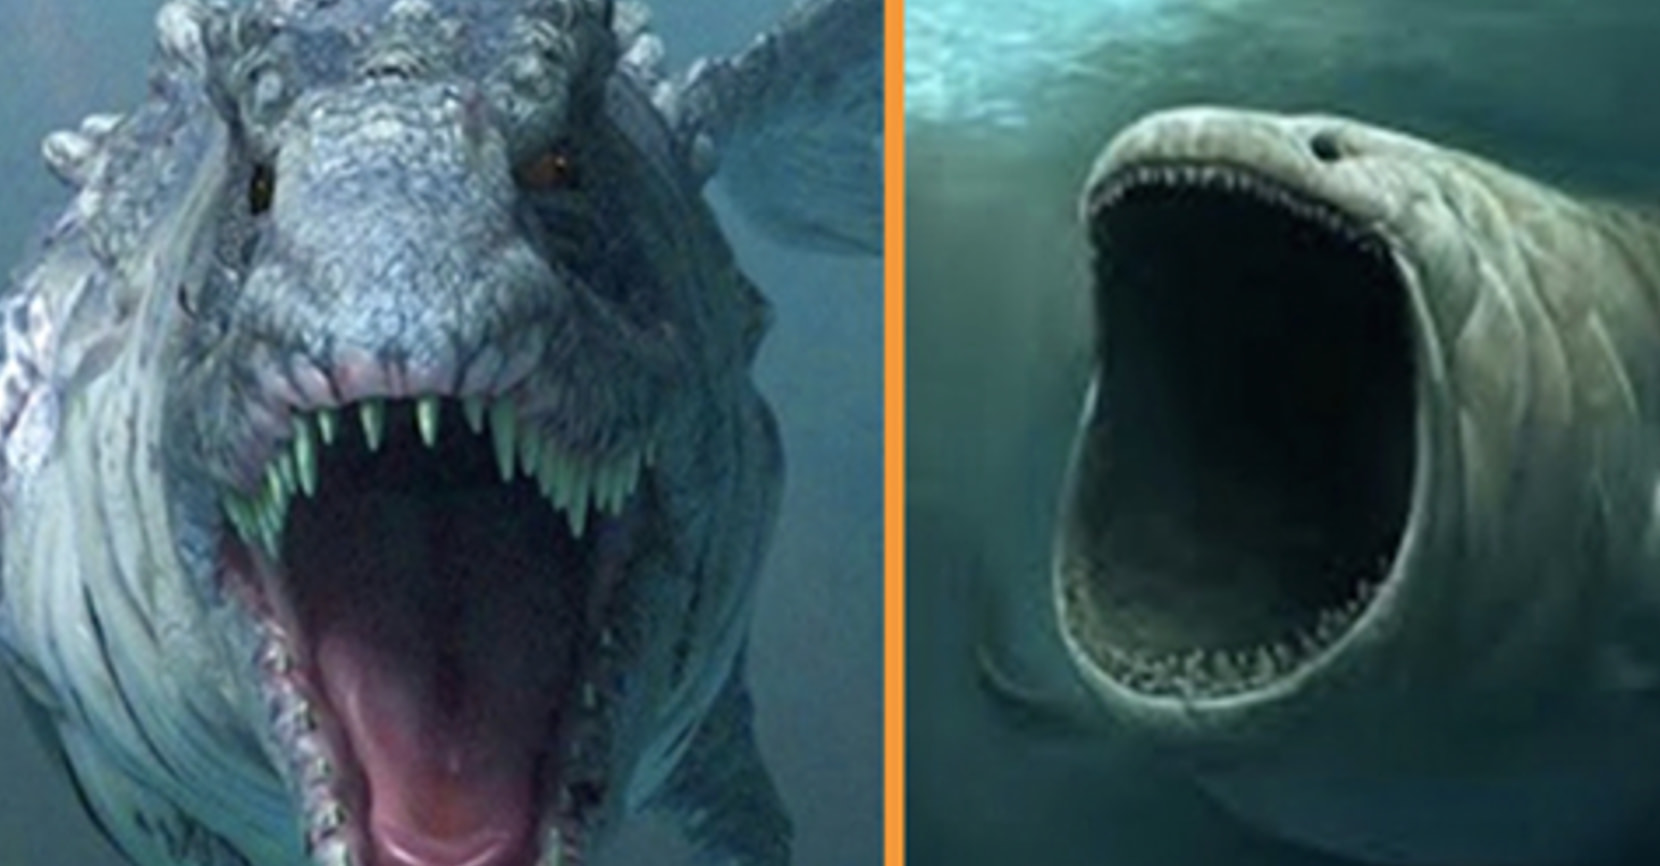 15 Terrifying Animals You'll Be Glad Don't Exist Anymore